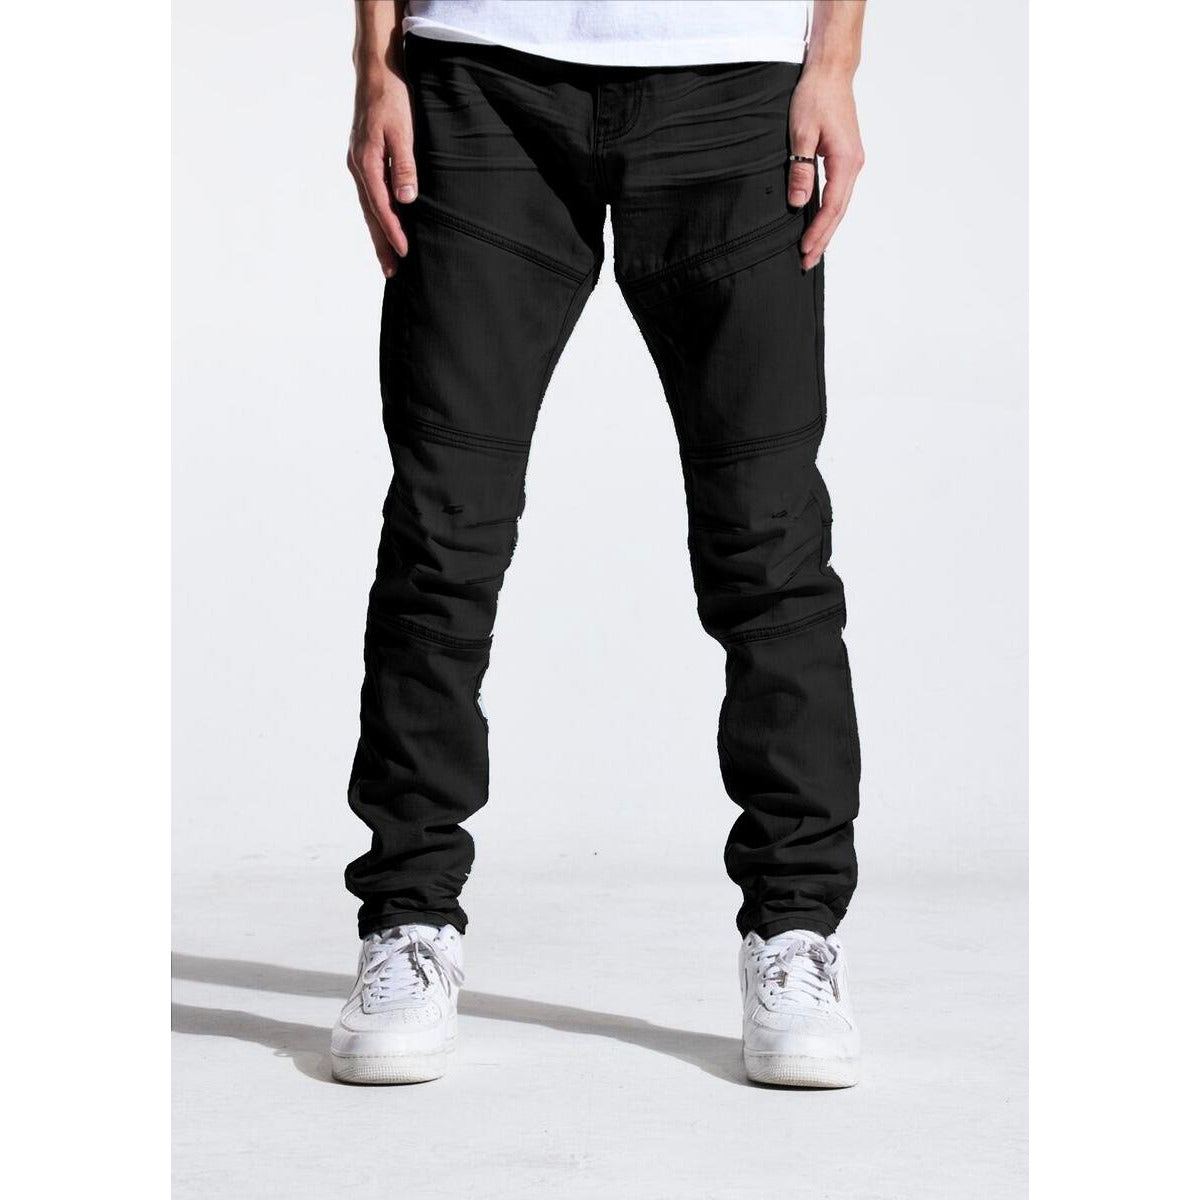 Crysp Denim Jet Black Kurt Denim Jeans (CRYSPJB-102)